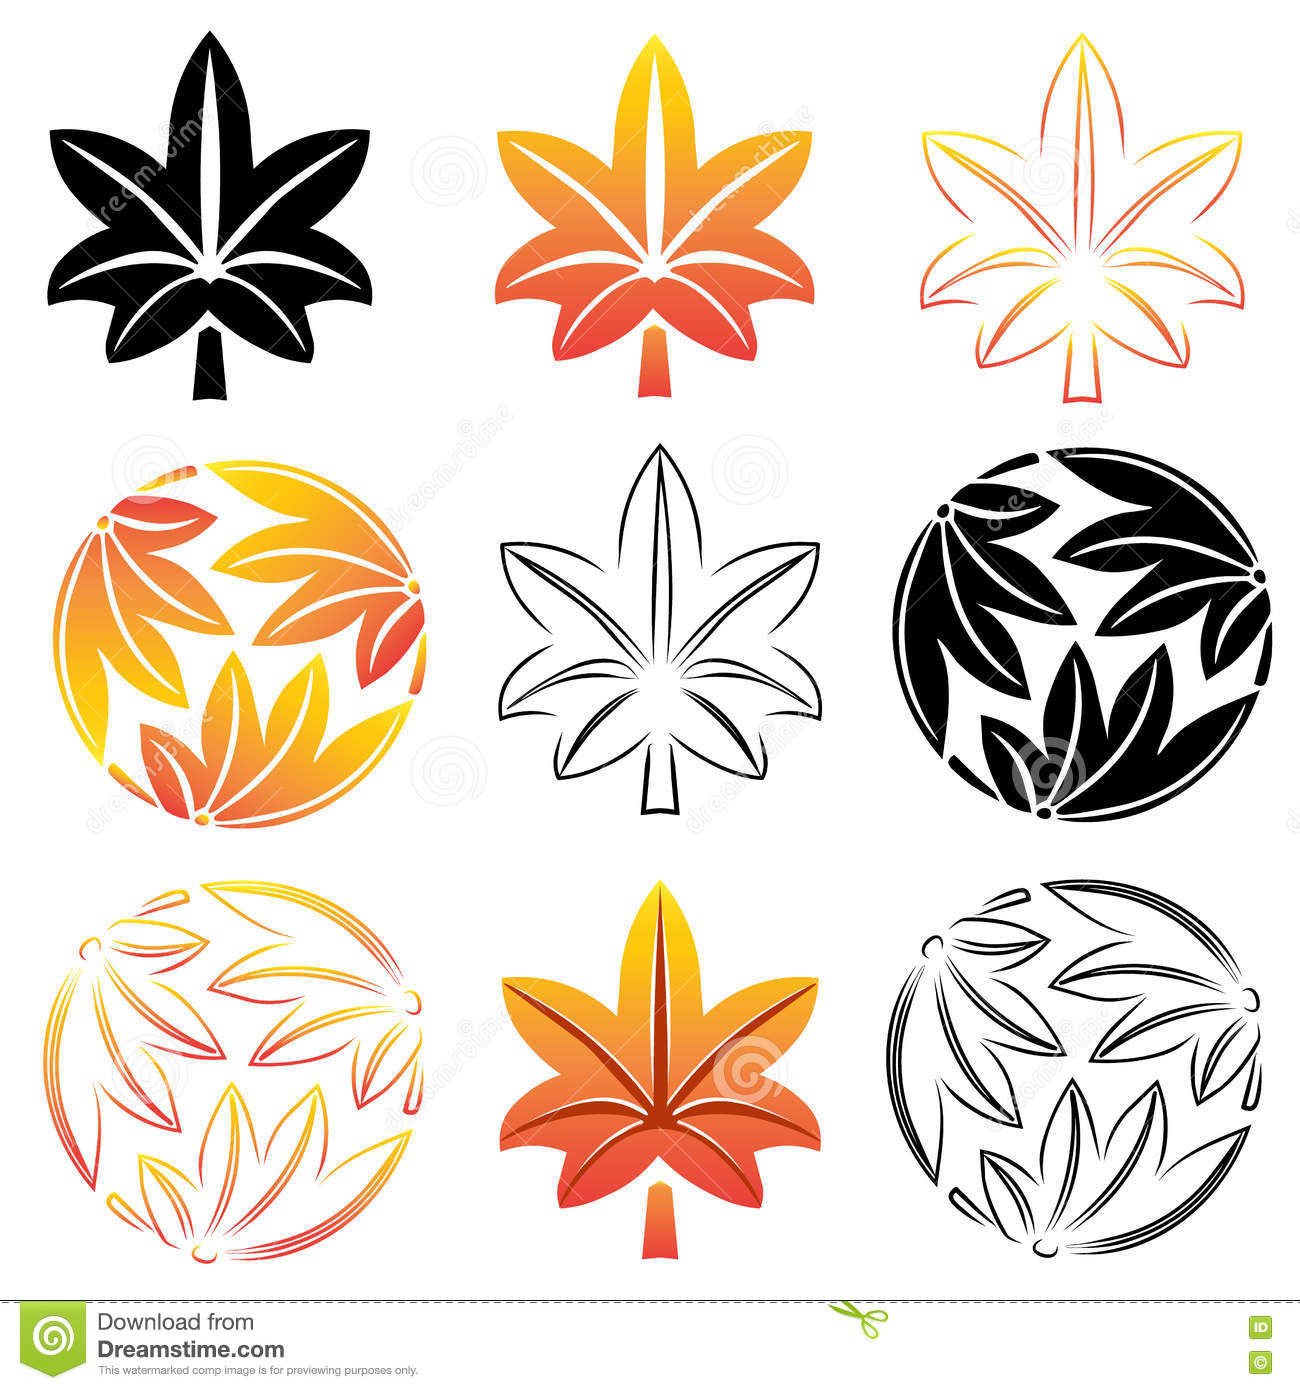 The Stylized Set Maple Leaves Japanese Symbolism Illustration